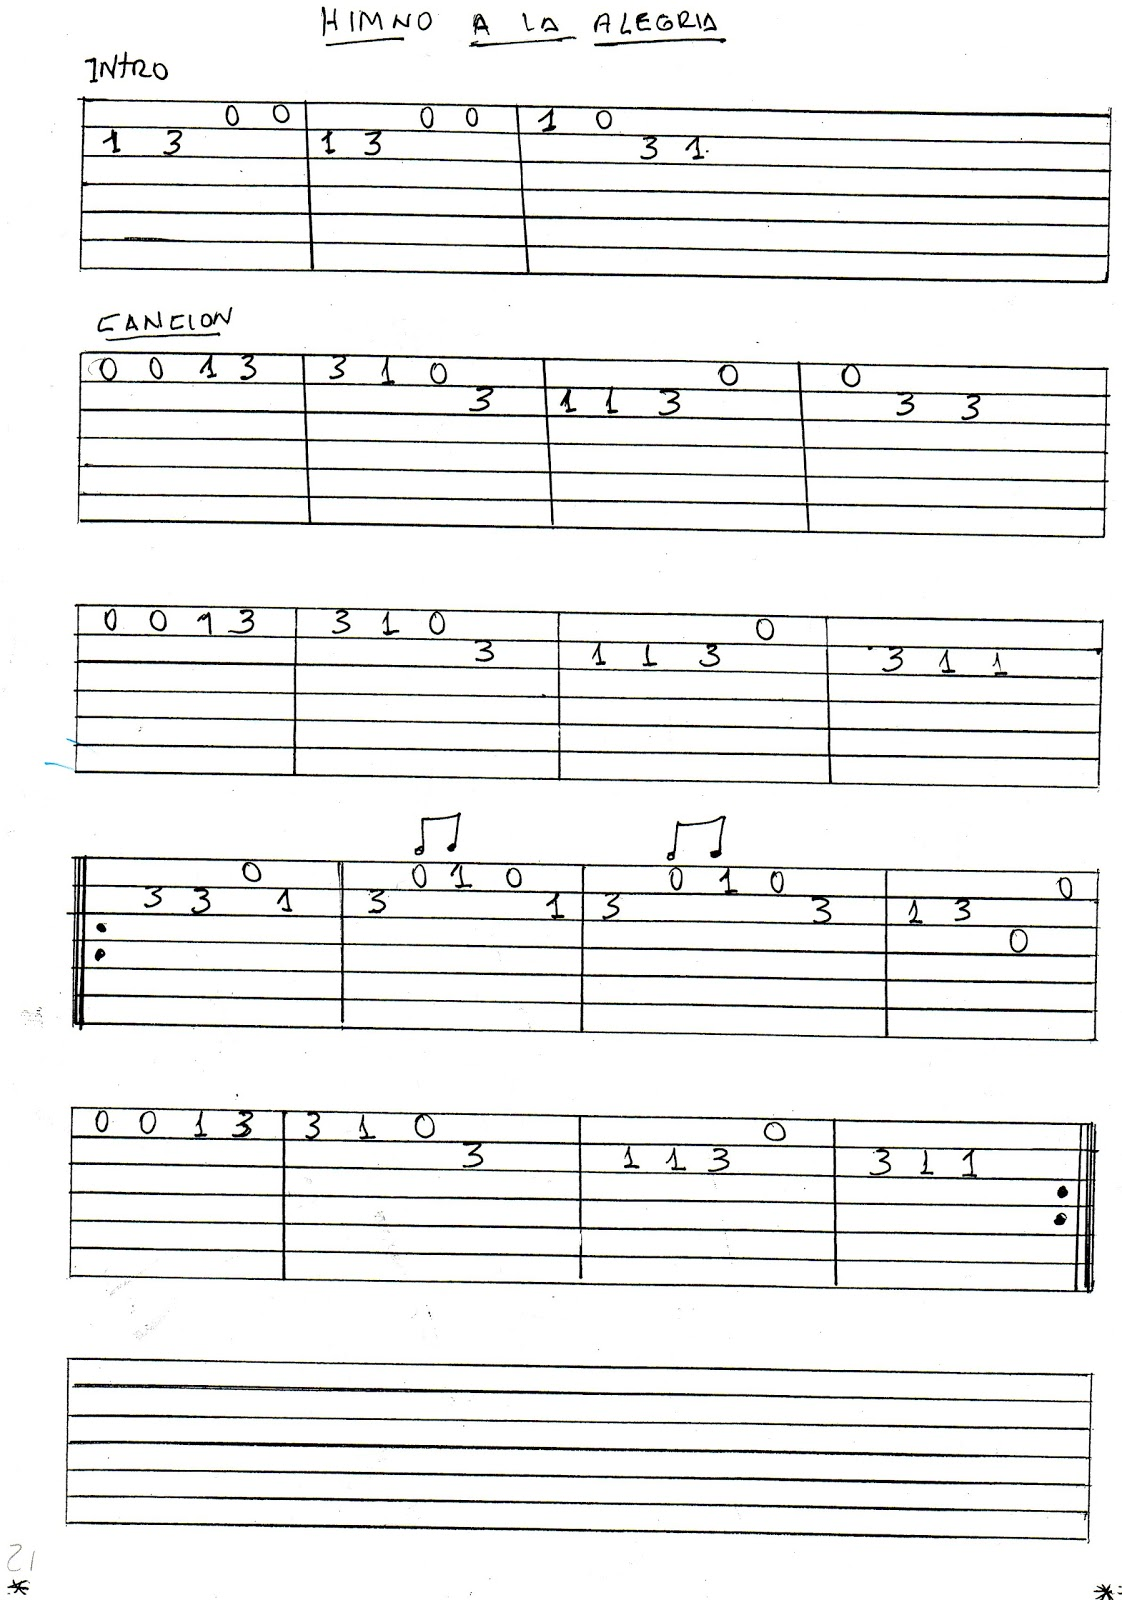 Guitarra clasica y ayacuchana partitura y tablatura del for Partituras guitarra clasica